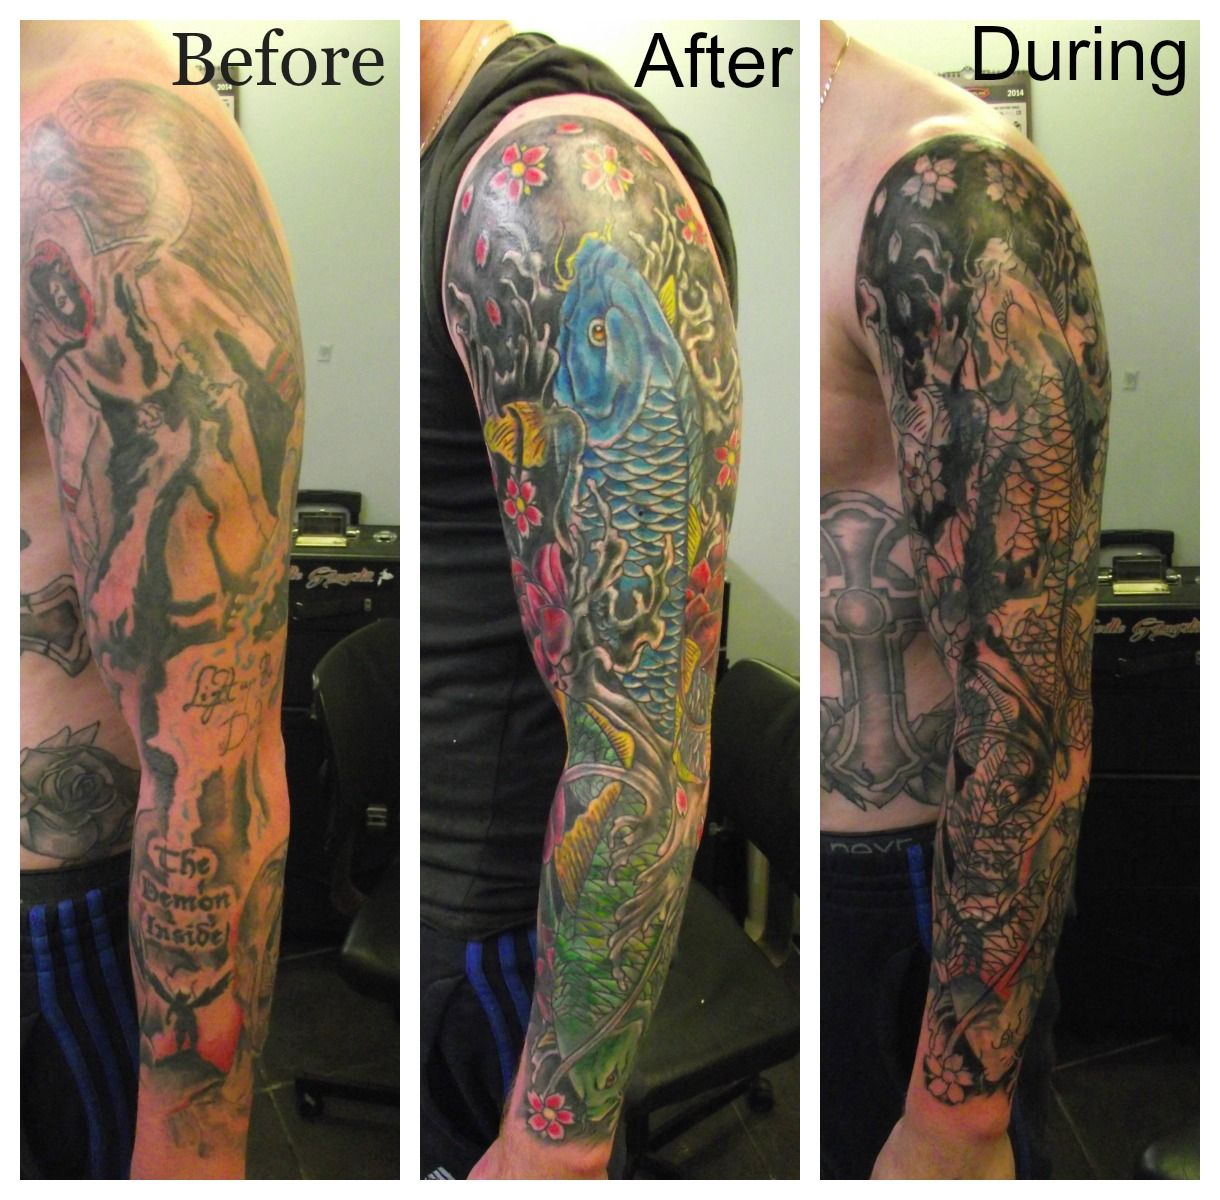 Full Sleeve cover up By Paul Butler Tattoo sleeve cover